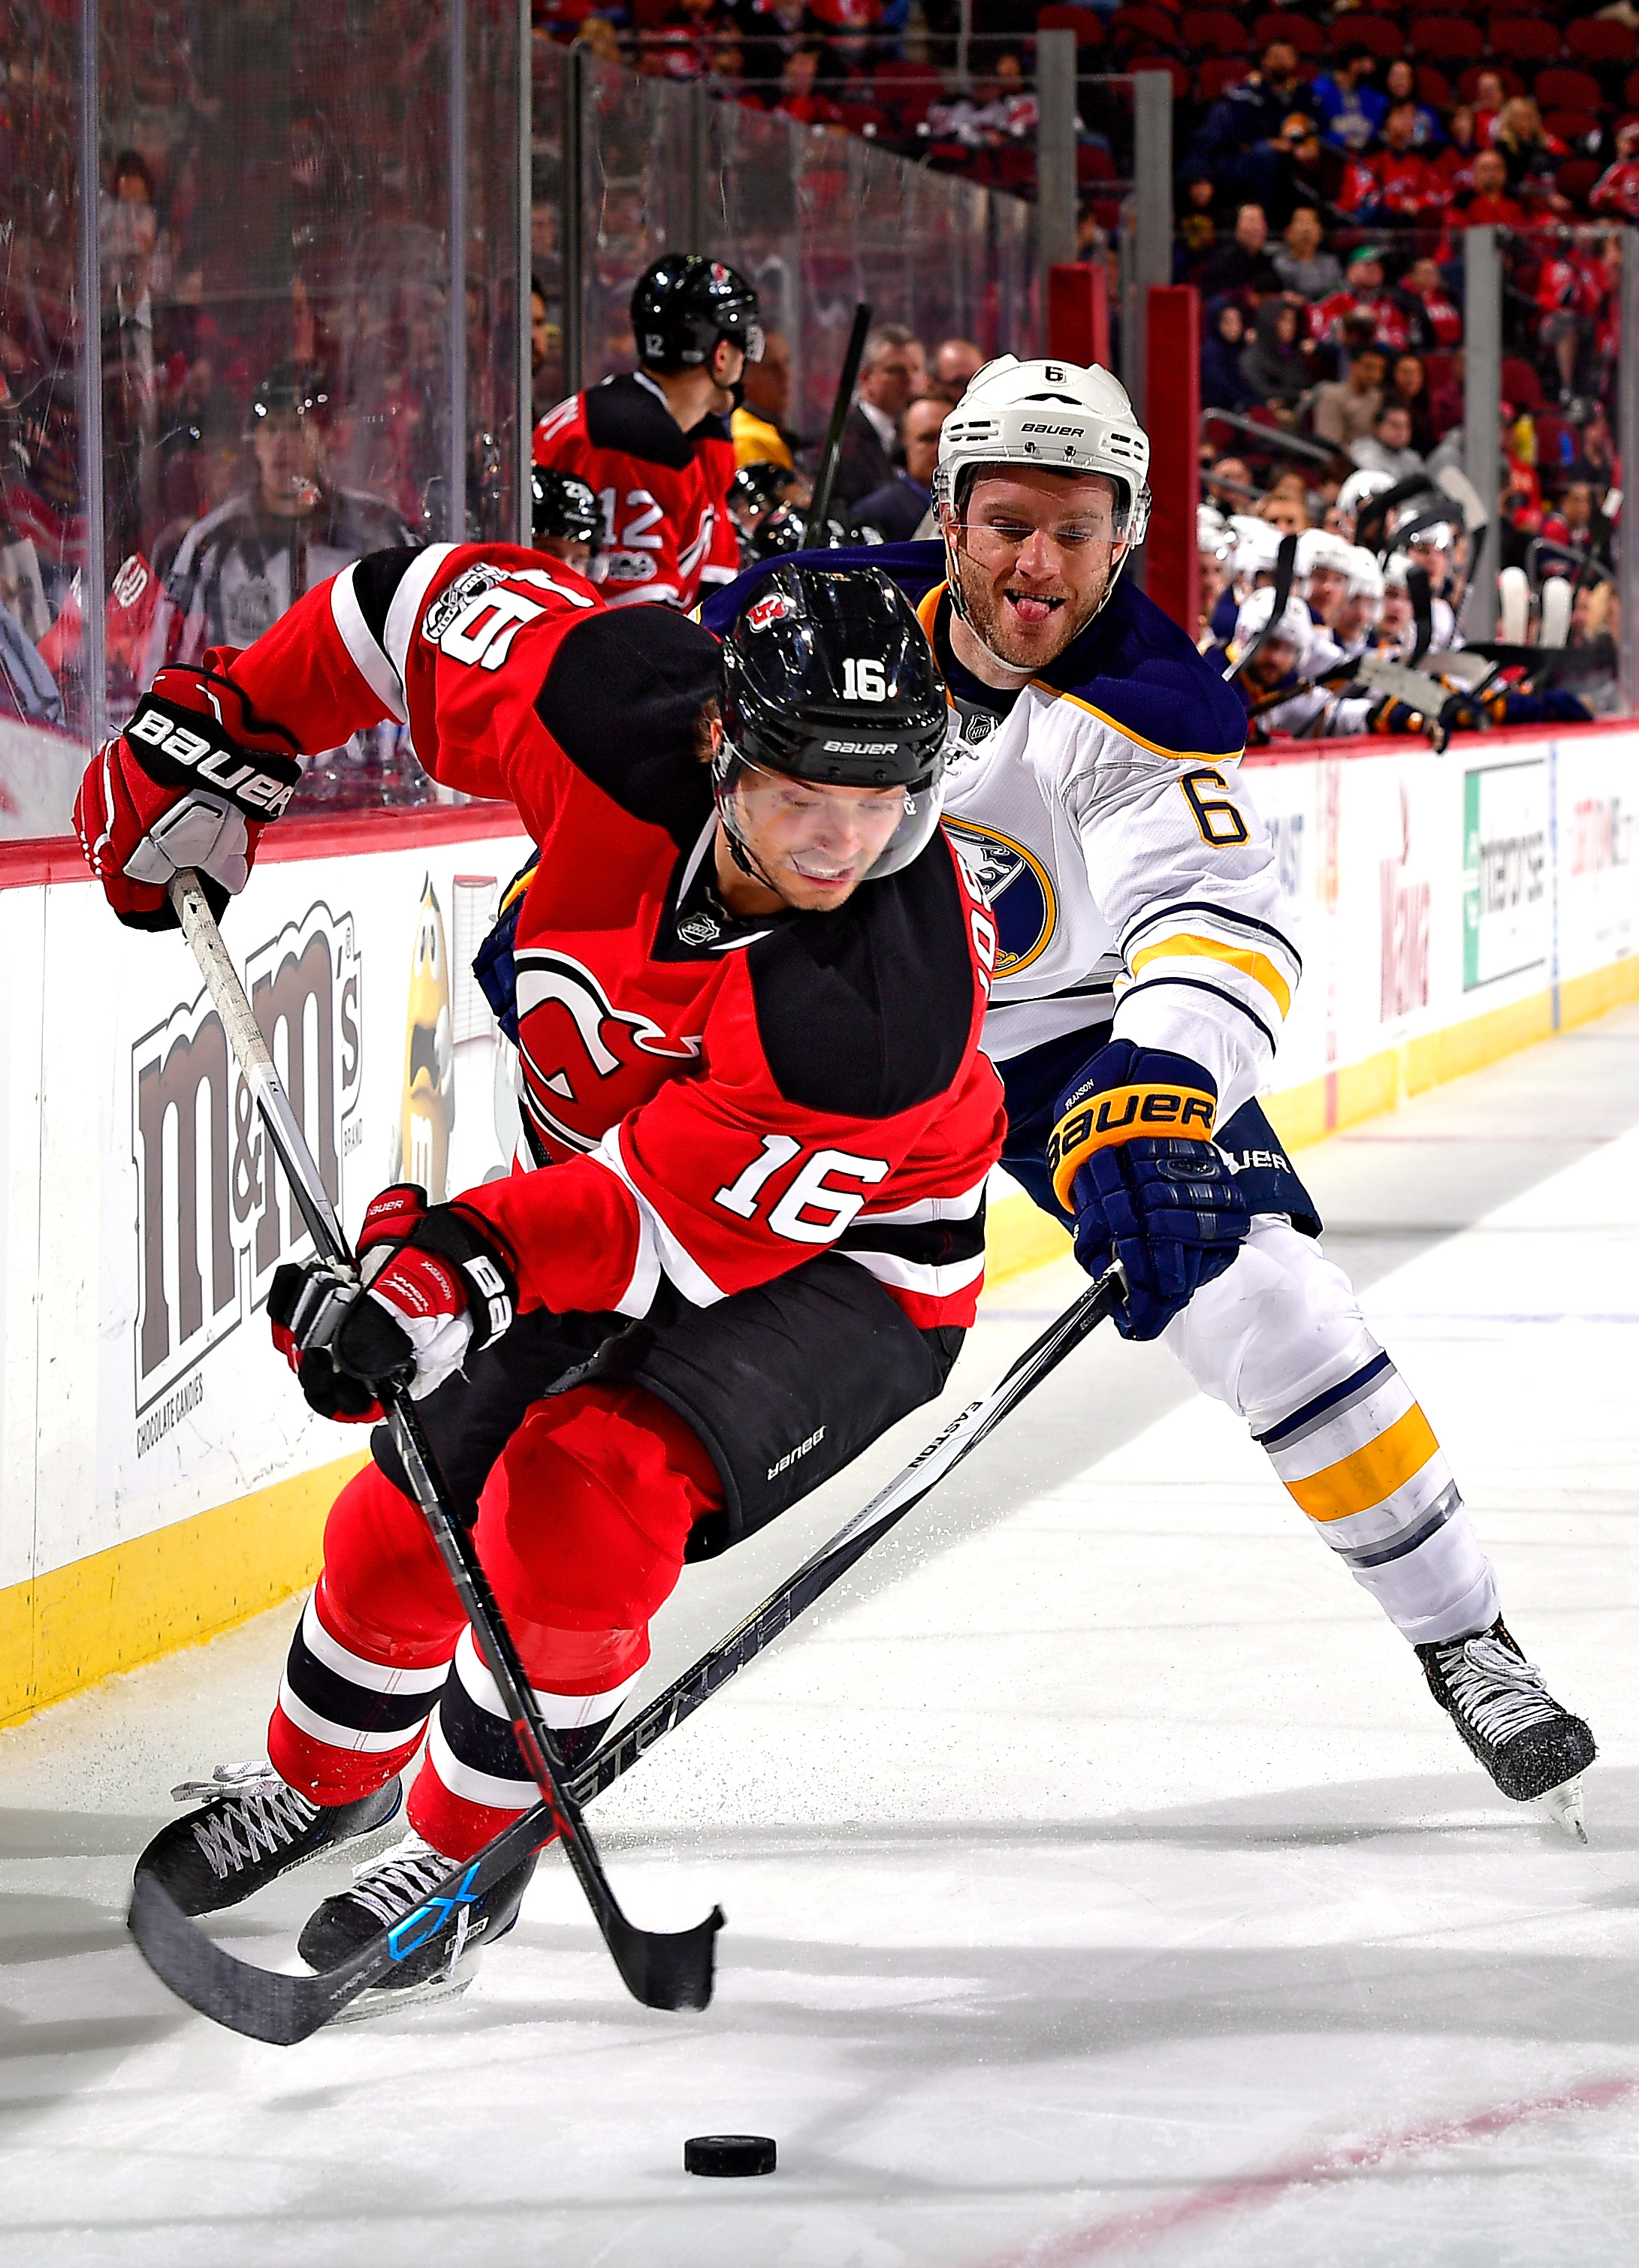 The Sabres' Cody Franson, jostling with New Jersey's Jacob Josefson, is a potential trade-deadline piece. (Getty Images)